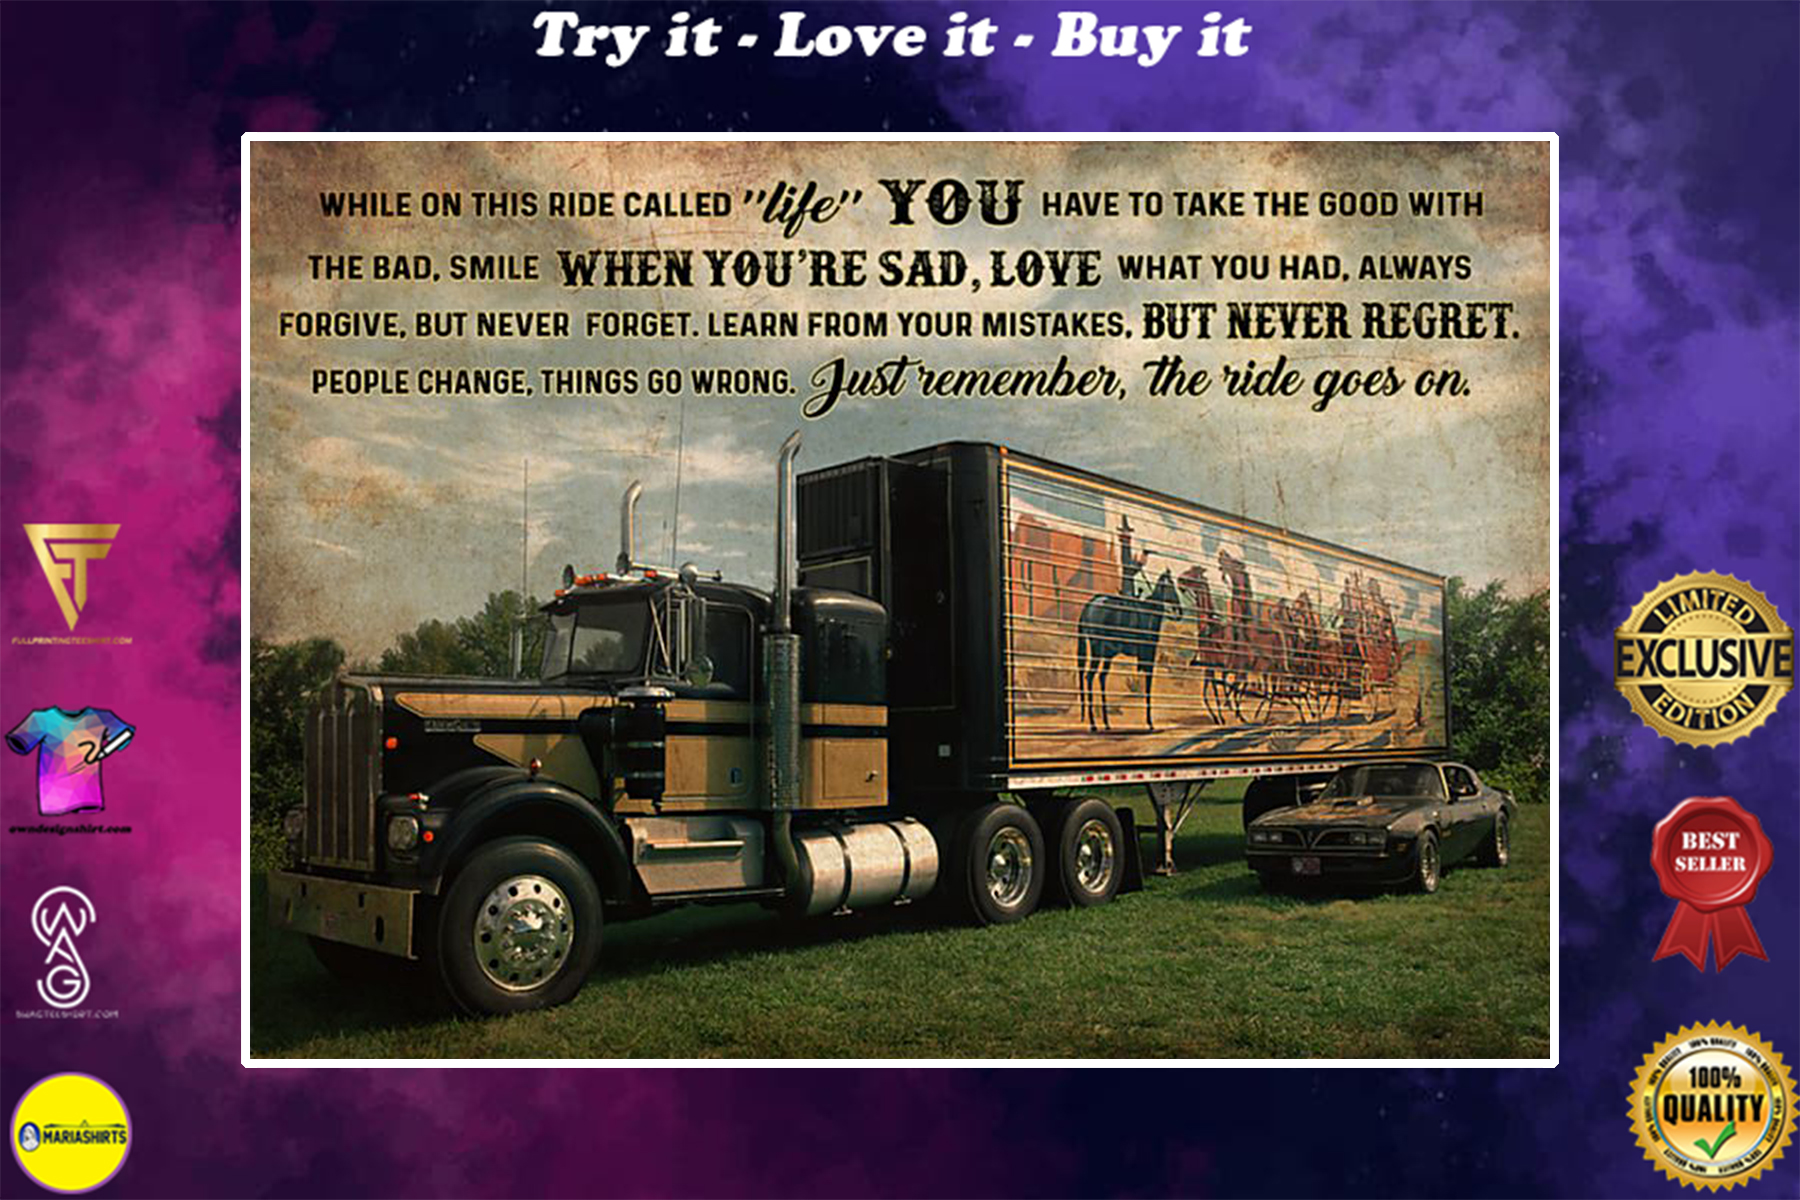 smokey truck while on this ride called life just remember the ride goes on poster